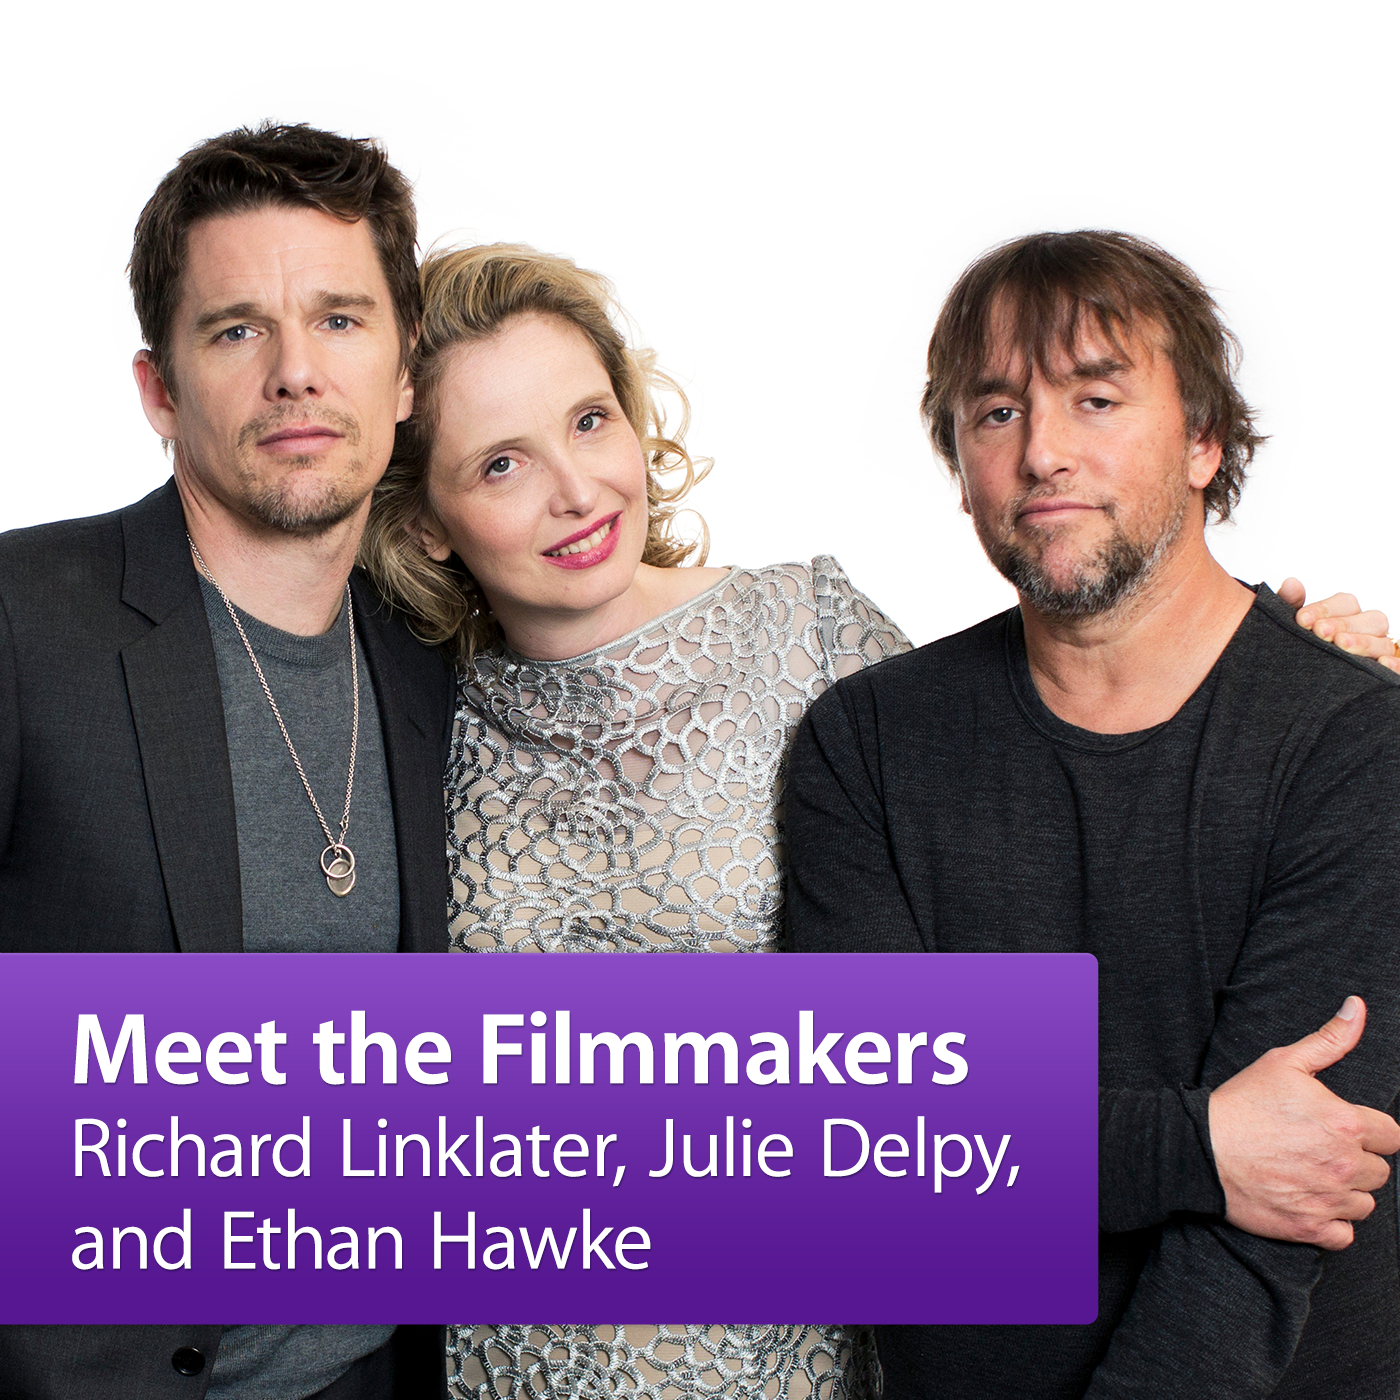 Richard Linklater, Julie Delpy, and Ethan Hawke: Meet the Filmmakers